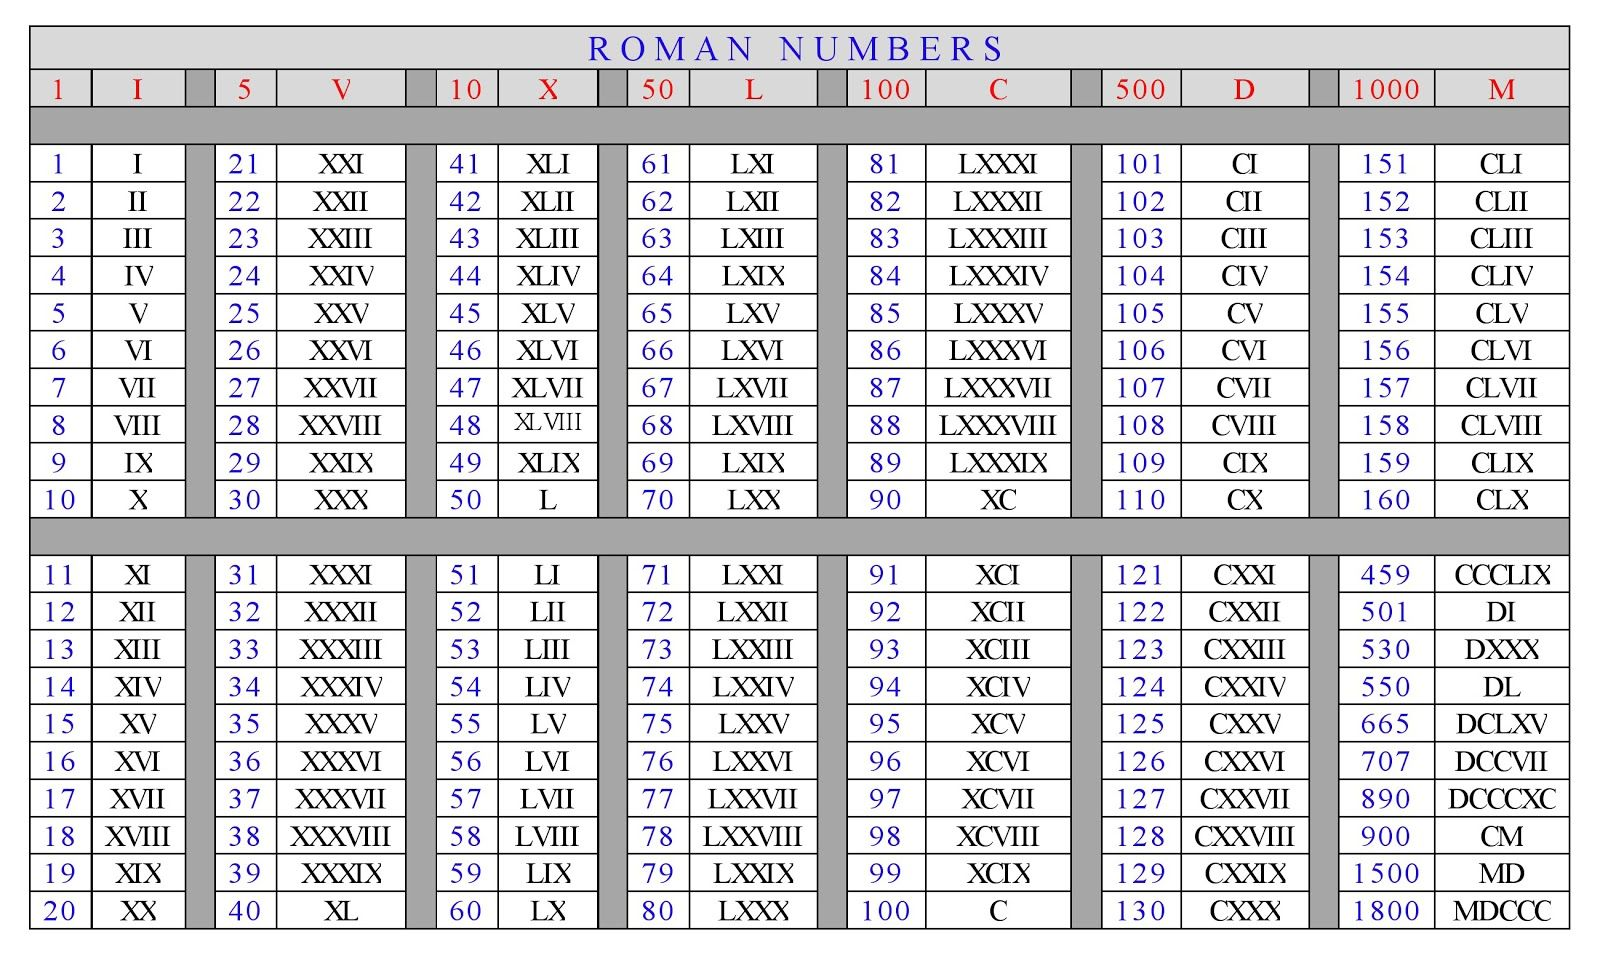 Worksheet Roman Numerals Printable  Images About Roman